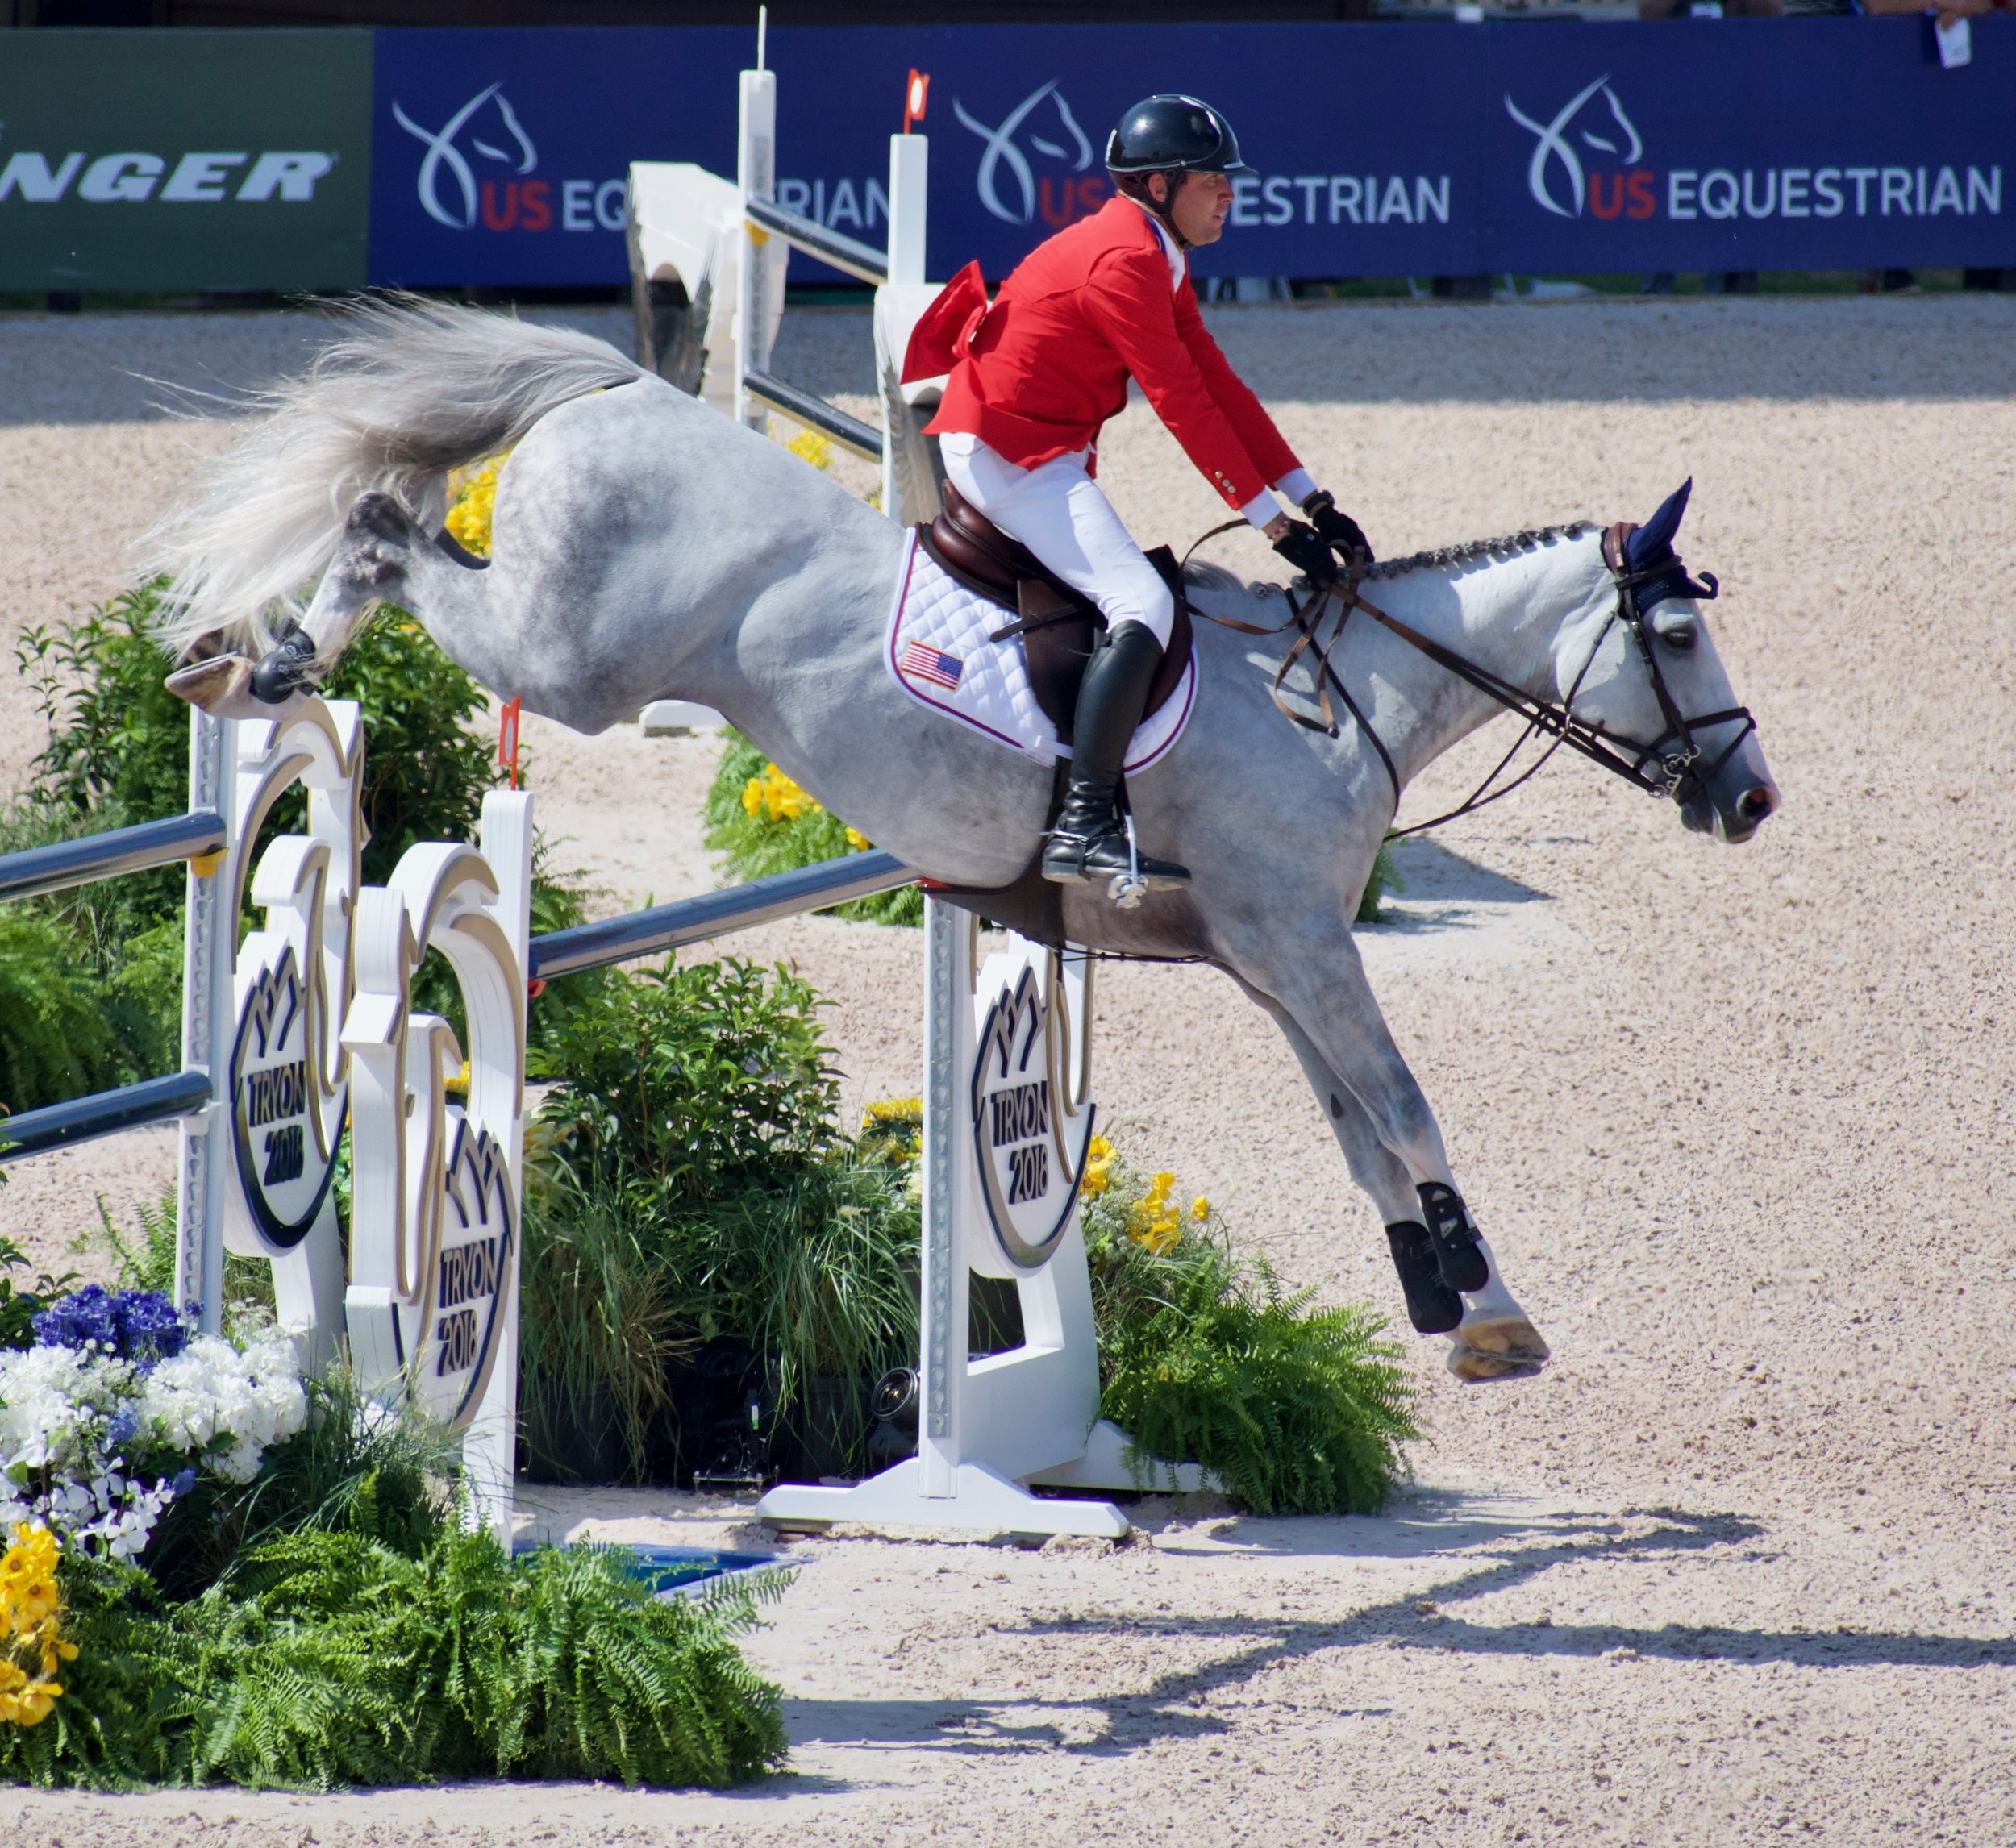 Grace under pressure demonstrated by Devin Ryan and Eddie Blue clearing the Tryon 2018 jump.